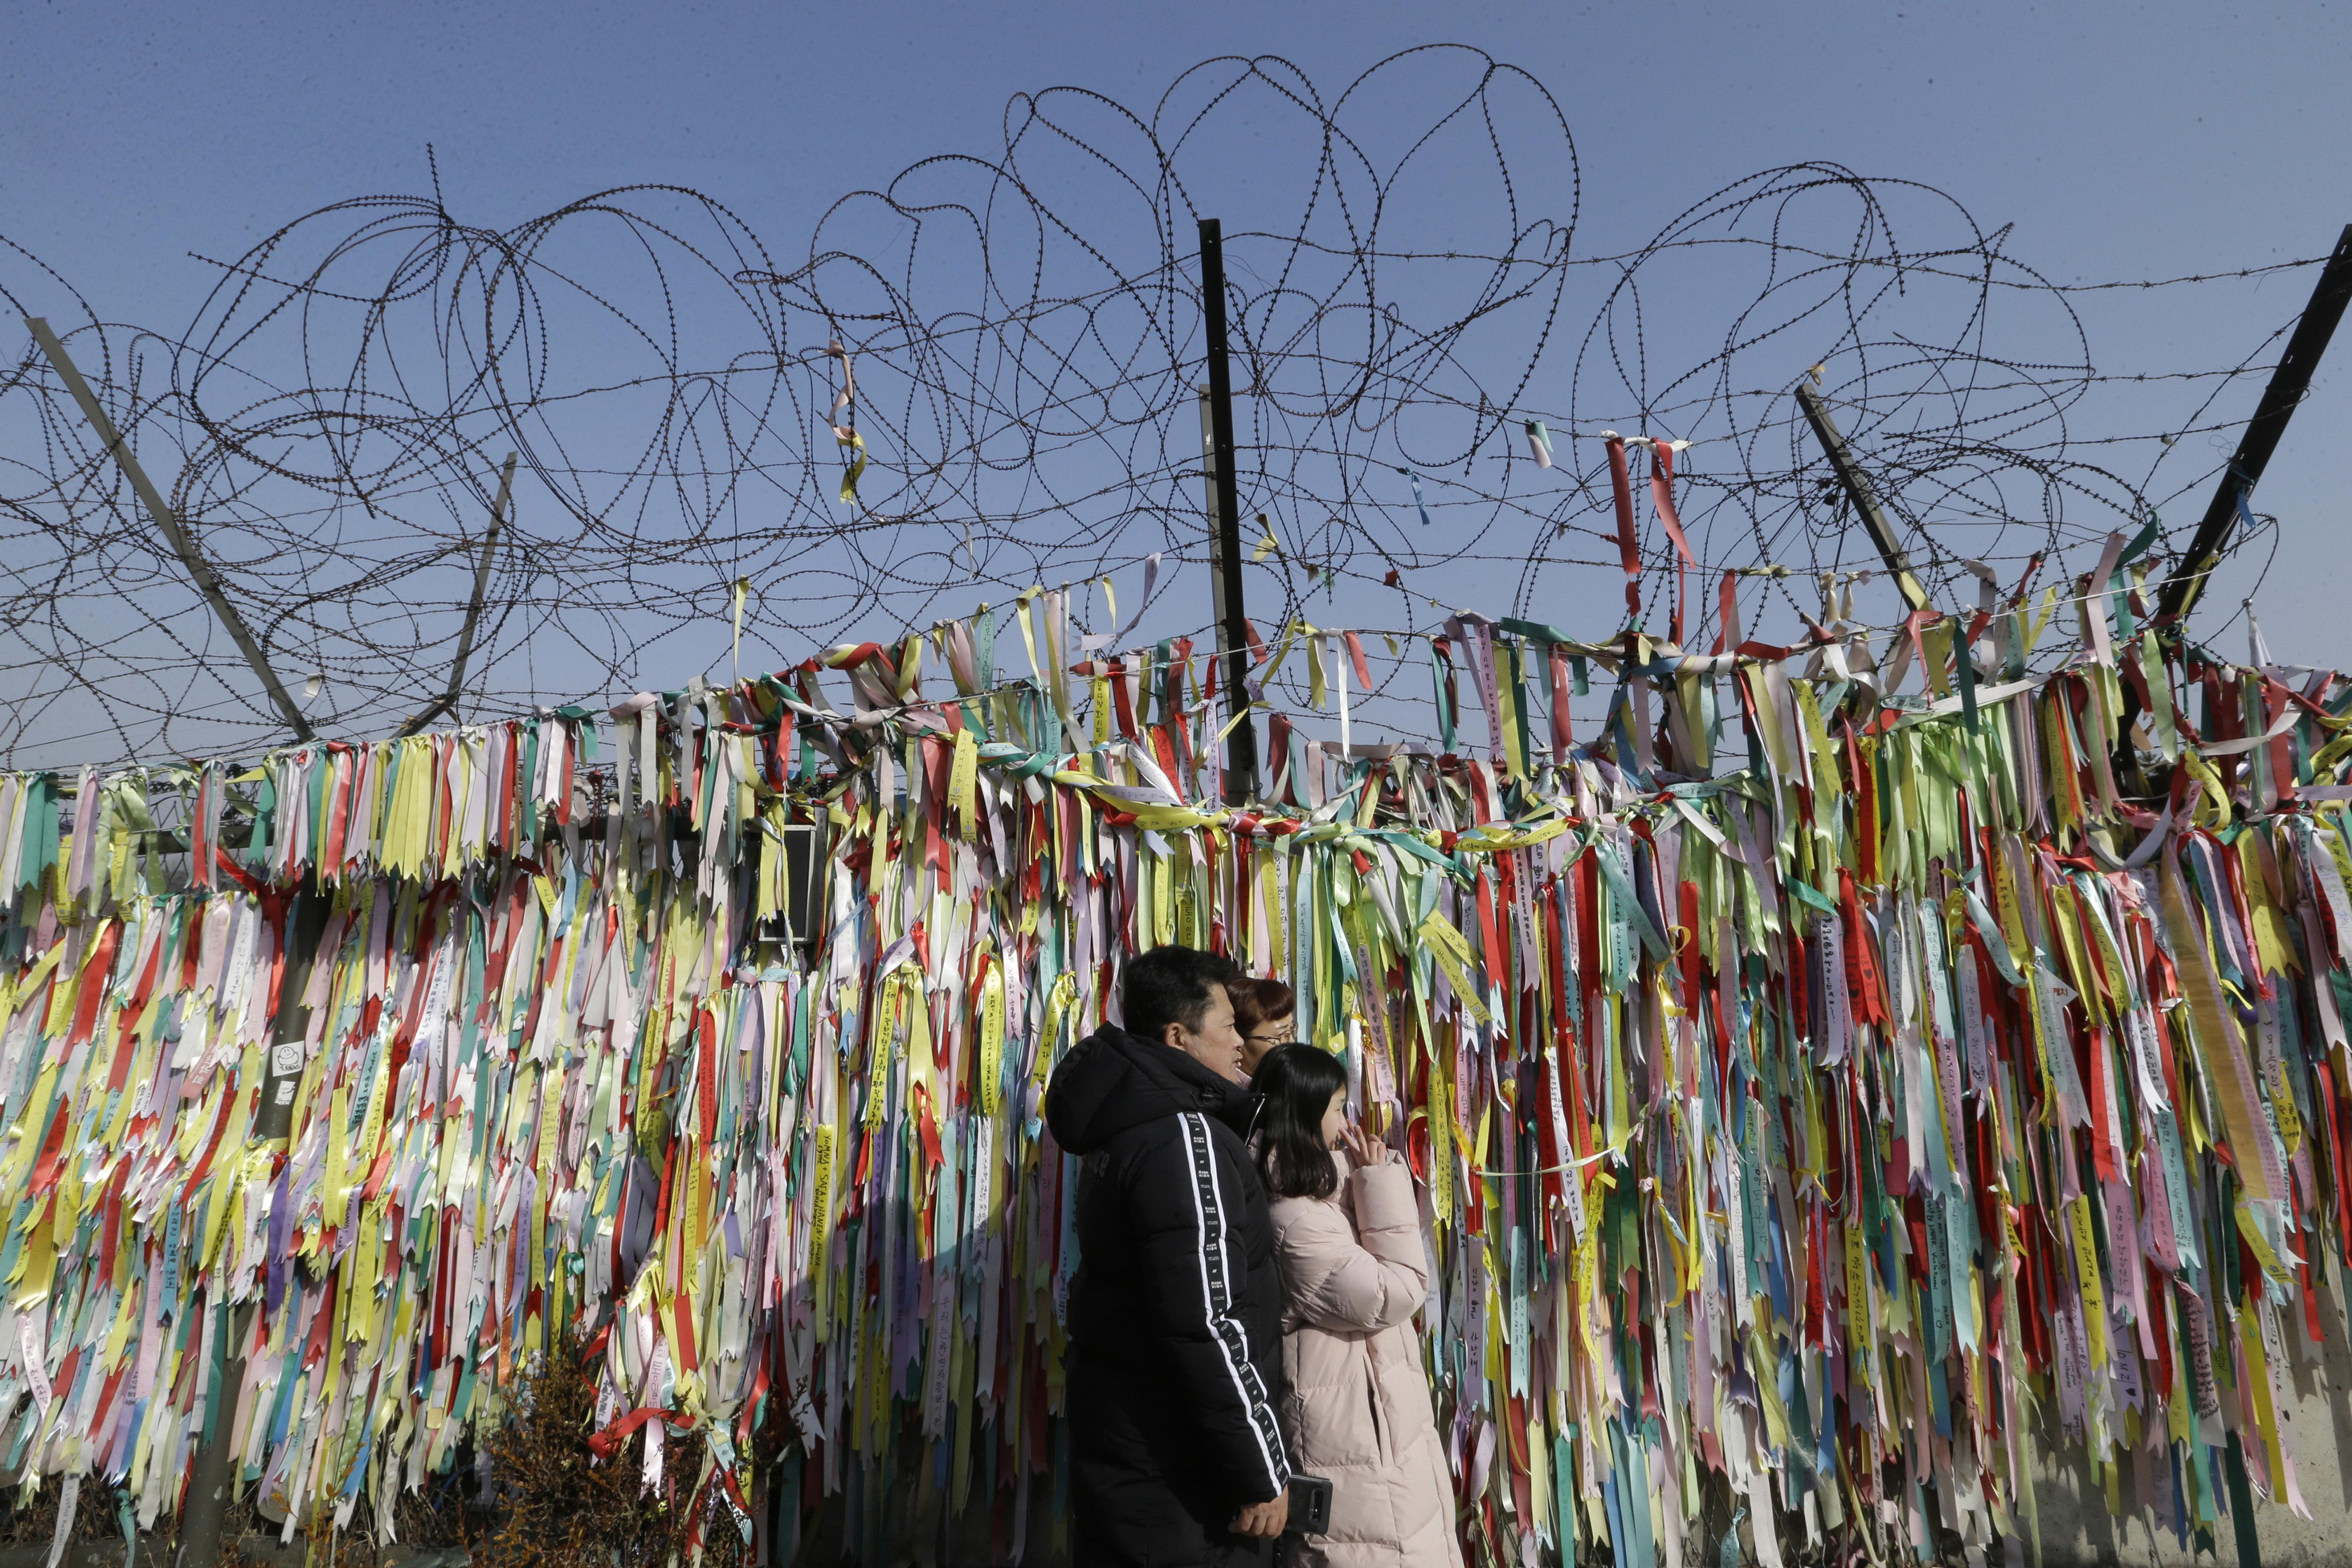 Hiking trail approved along Korea's demilitarized zone